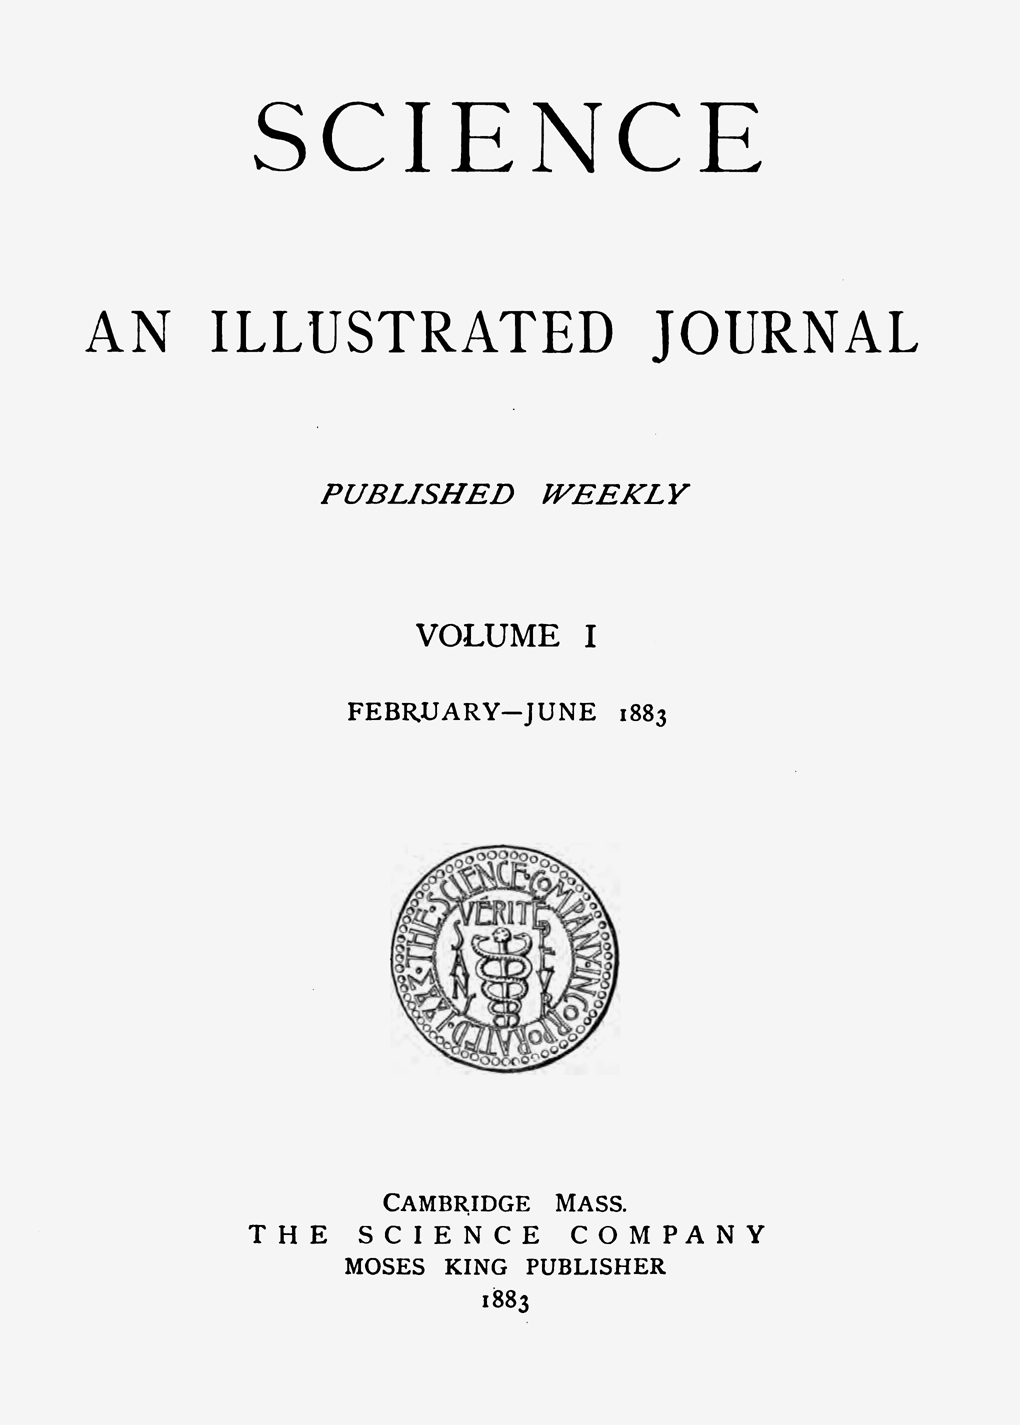 on cover page